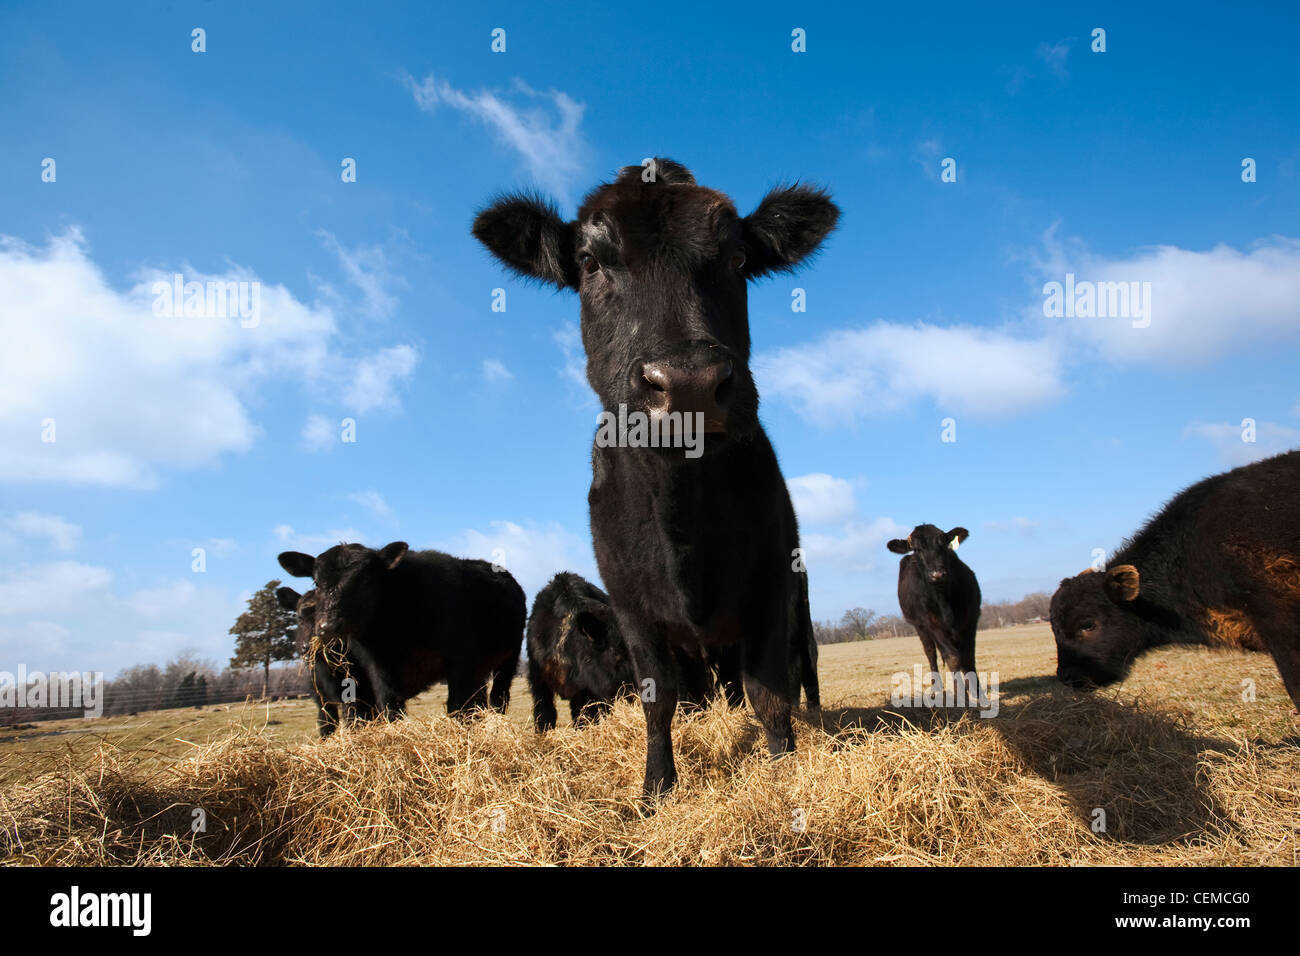 Livestock - Black Angus beef cattle feeding on hay on a dry, cold winter pasture / Arkansas, USA. - Stock Image